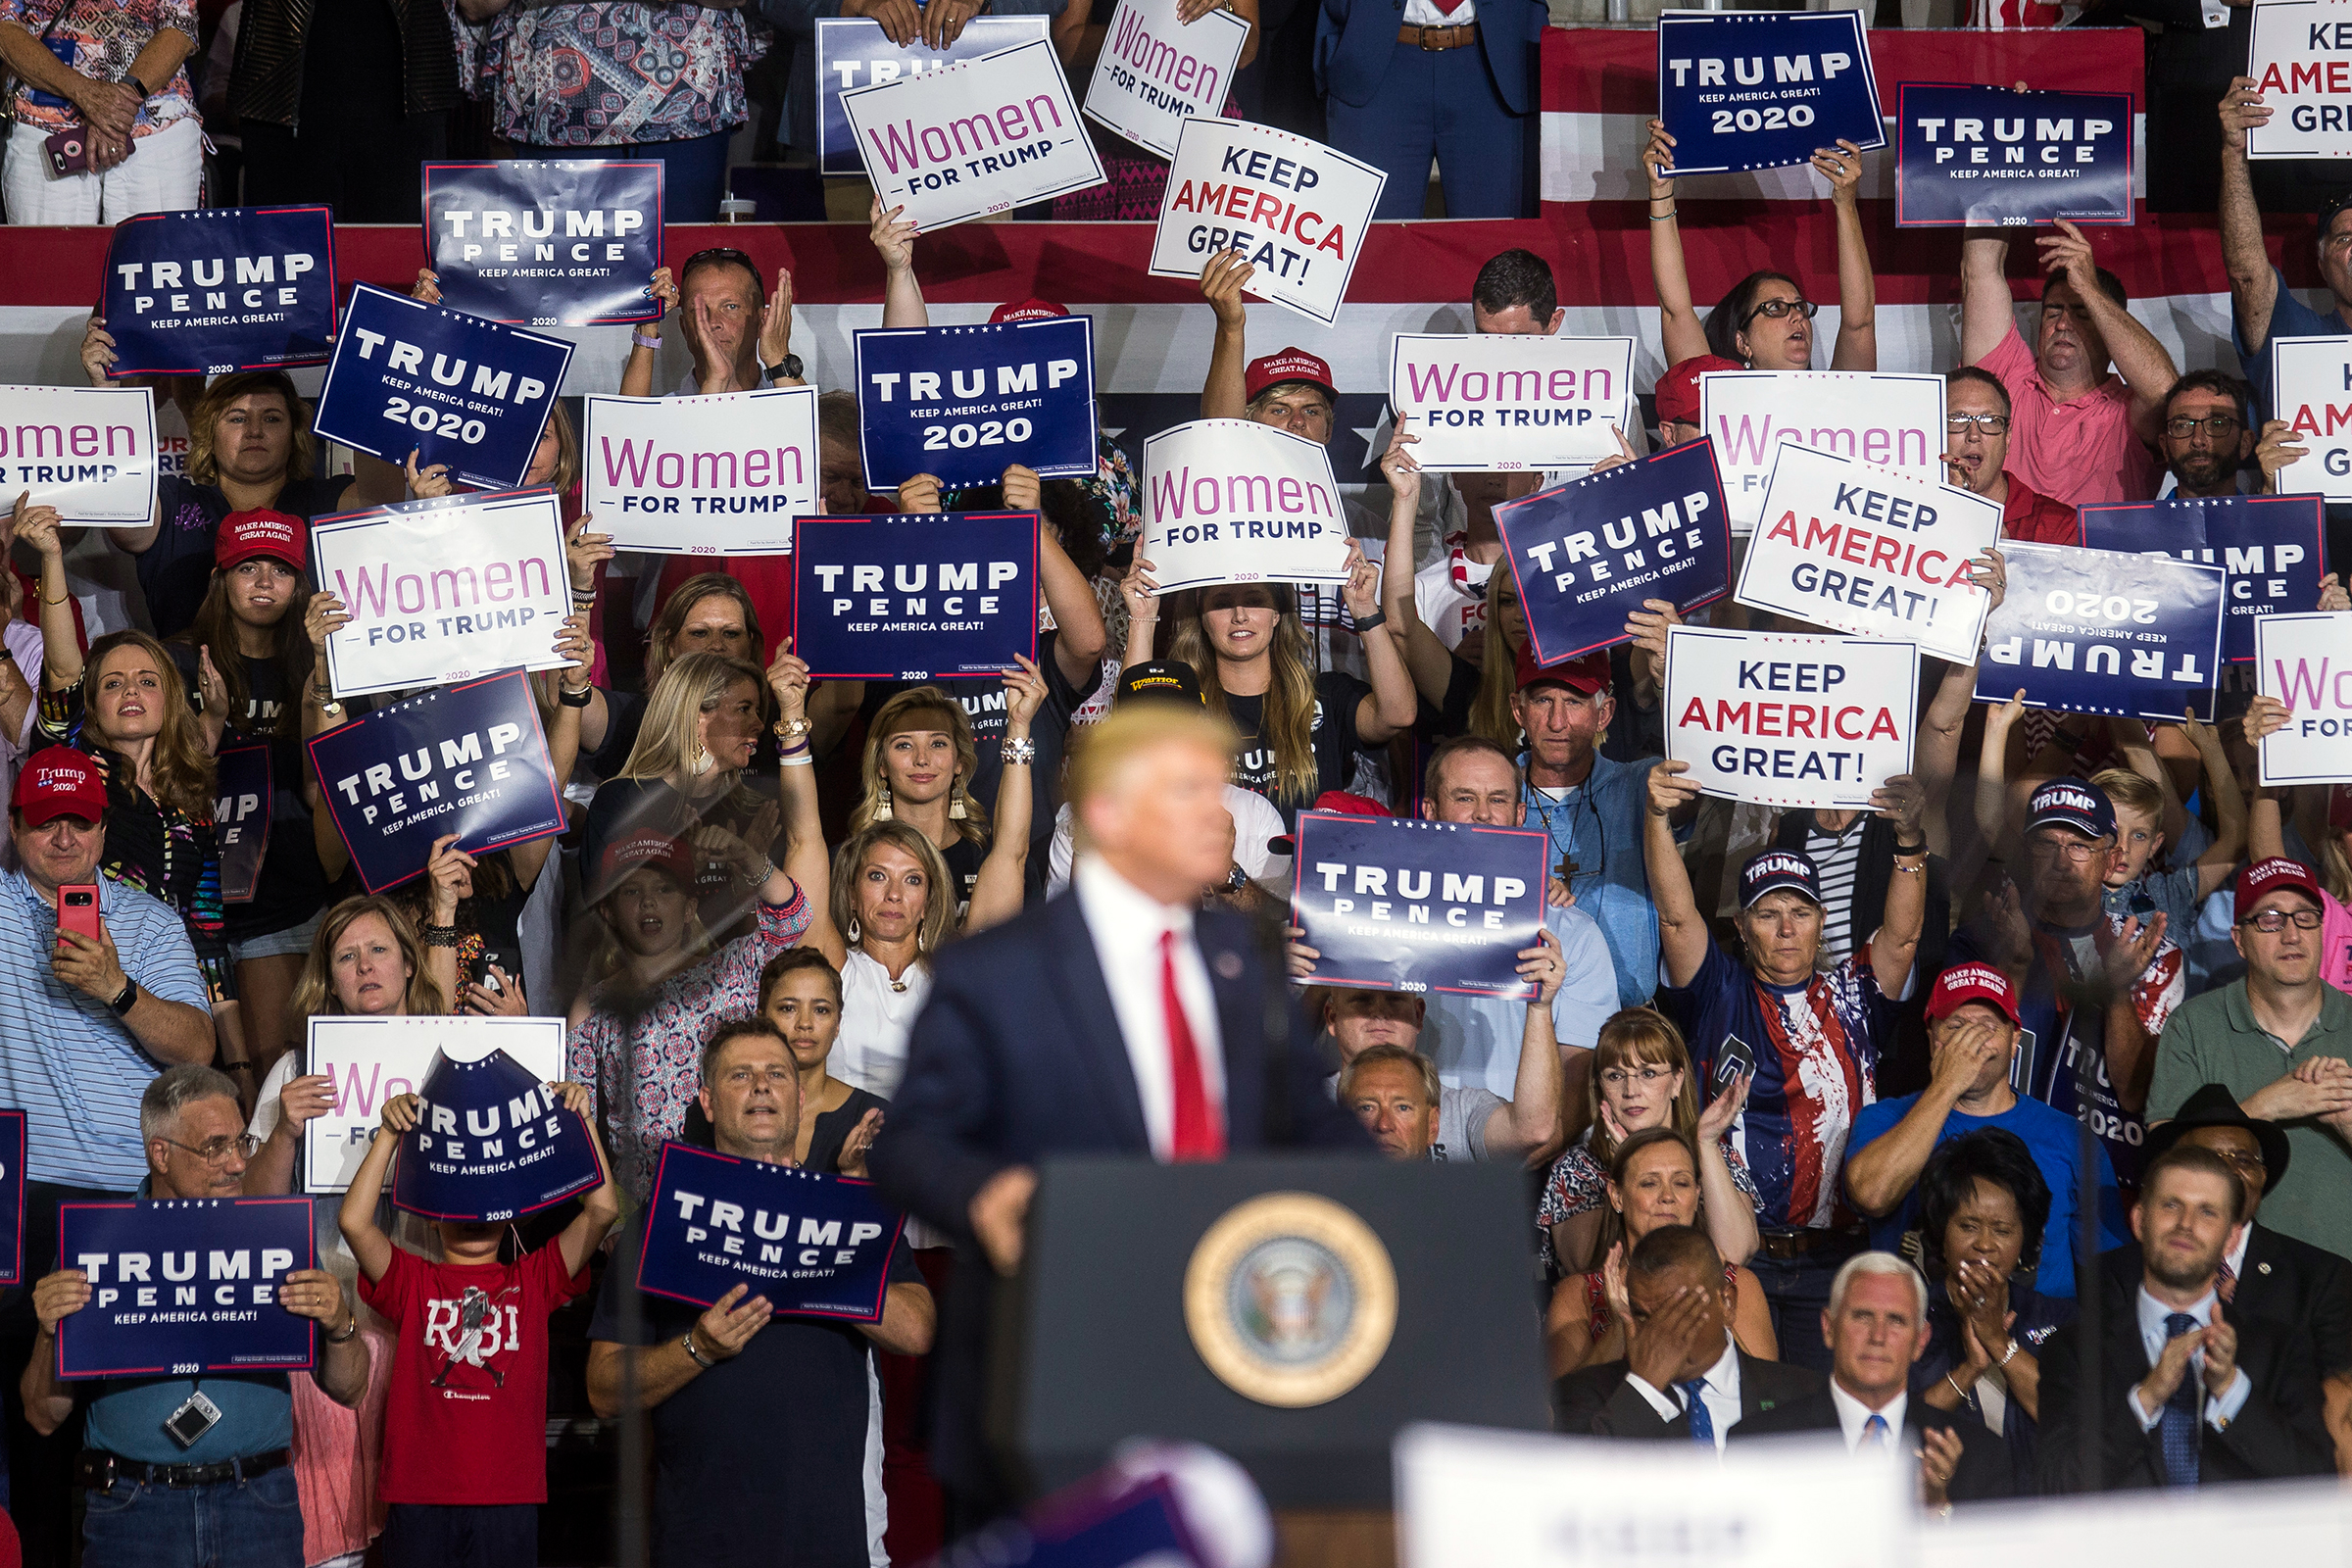 GREENVILLE, NC - JULY 17: Supporters of President Donald Trump cheer as he speaks during a Keep America Great rally on July 17, 2019 in Greenville, North Carolina. Trump is speaking in North Carolina only hours after The House of Representatives voted down an effort from a Texas Democrat to impeach the President. (Photo by Zach Gibson/Getty Images)